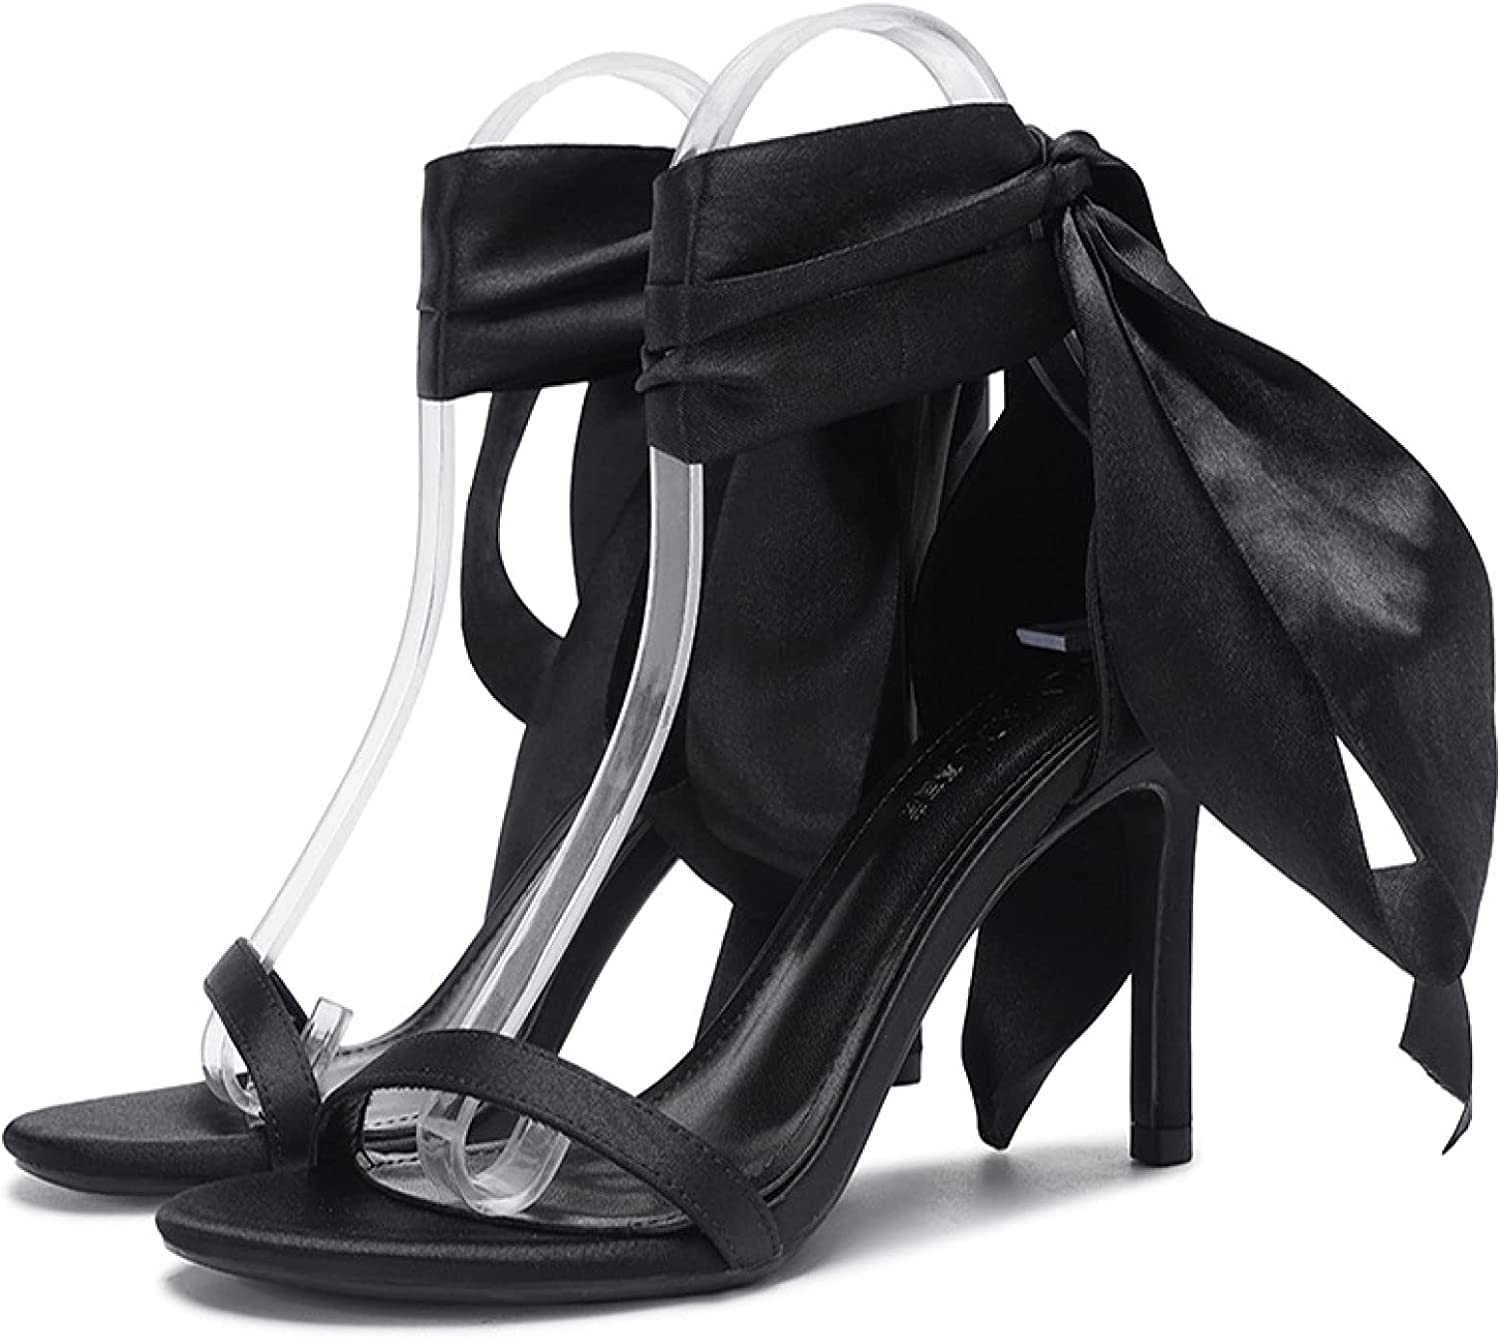 Womans Trendy Bownot Max 89% OFF Heeled Sandals Stilettos High-heel Toe Cheap mail order sales Open